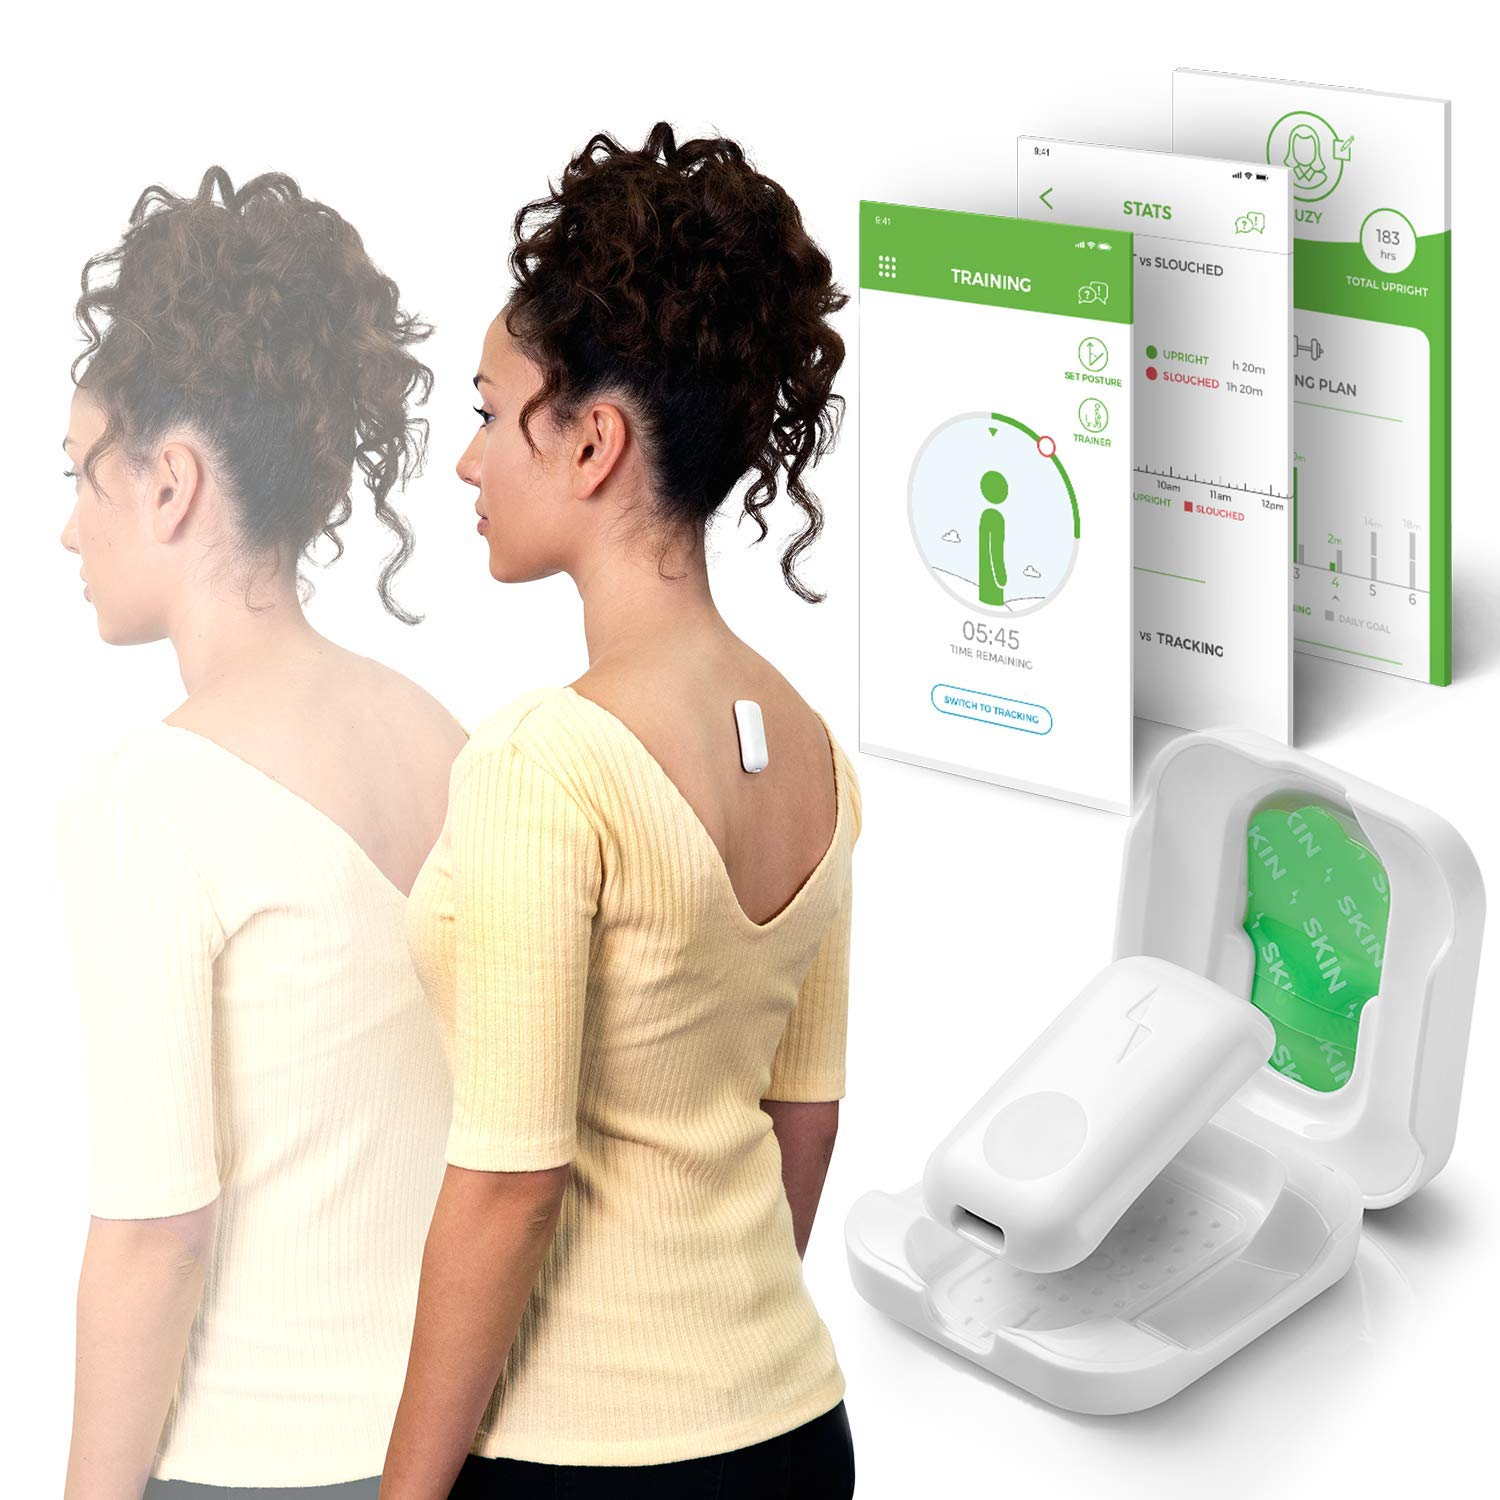 Upright GO 2 NEW Posture Trainer and Corrector for Back | Strapless, Discrete and Easy to Use | Complete with App and Training Plan | Back Health Benefits and Confidence Builder by Upright GO